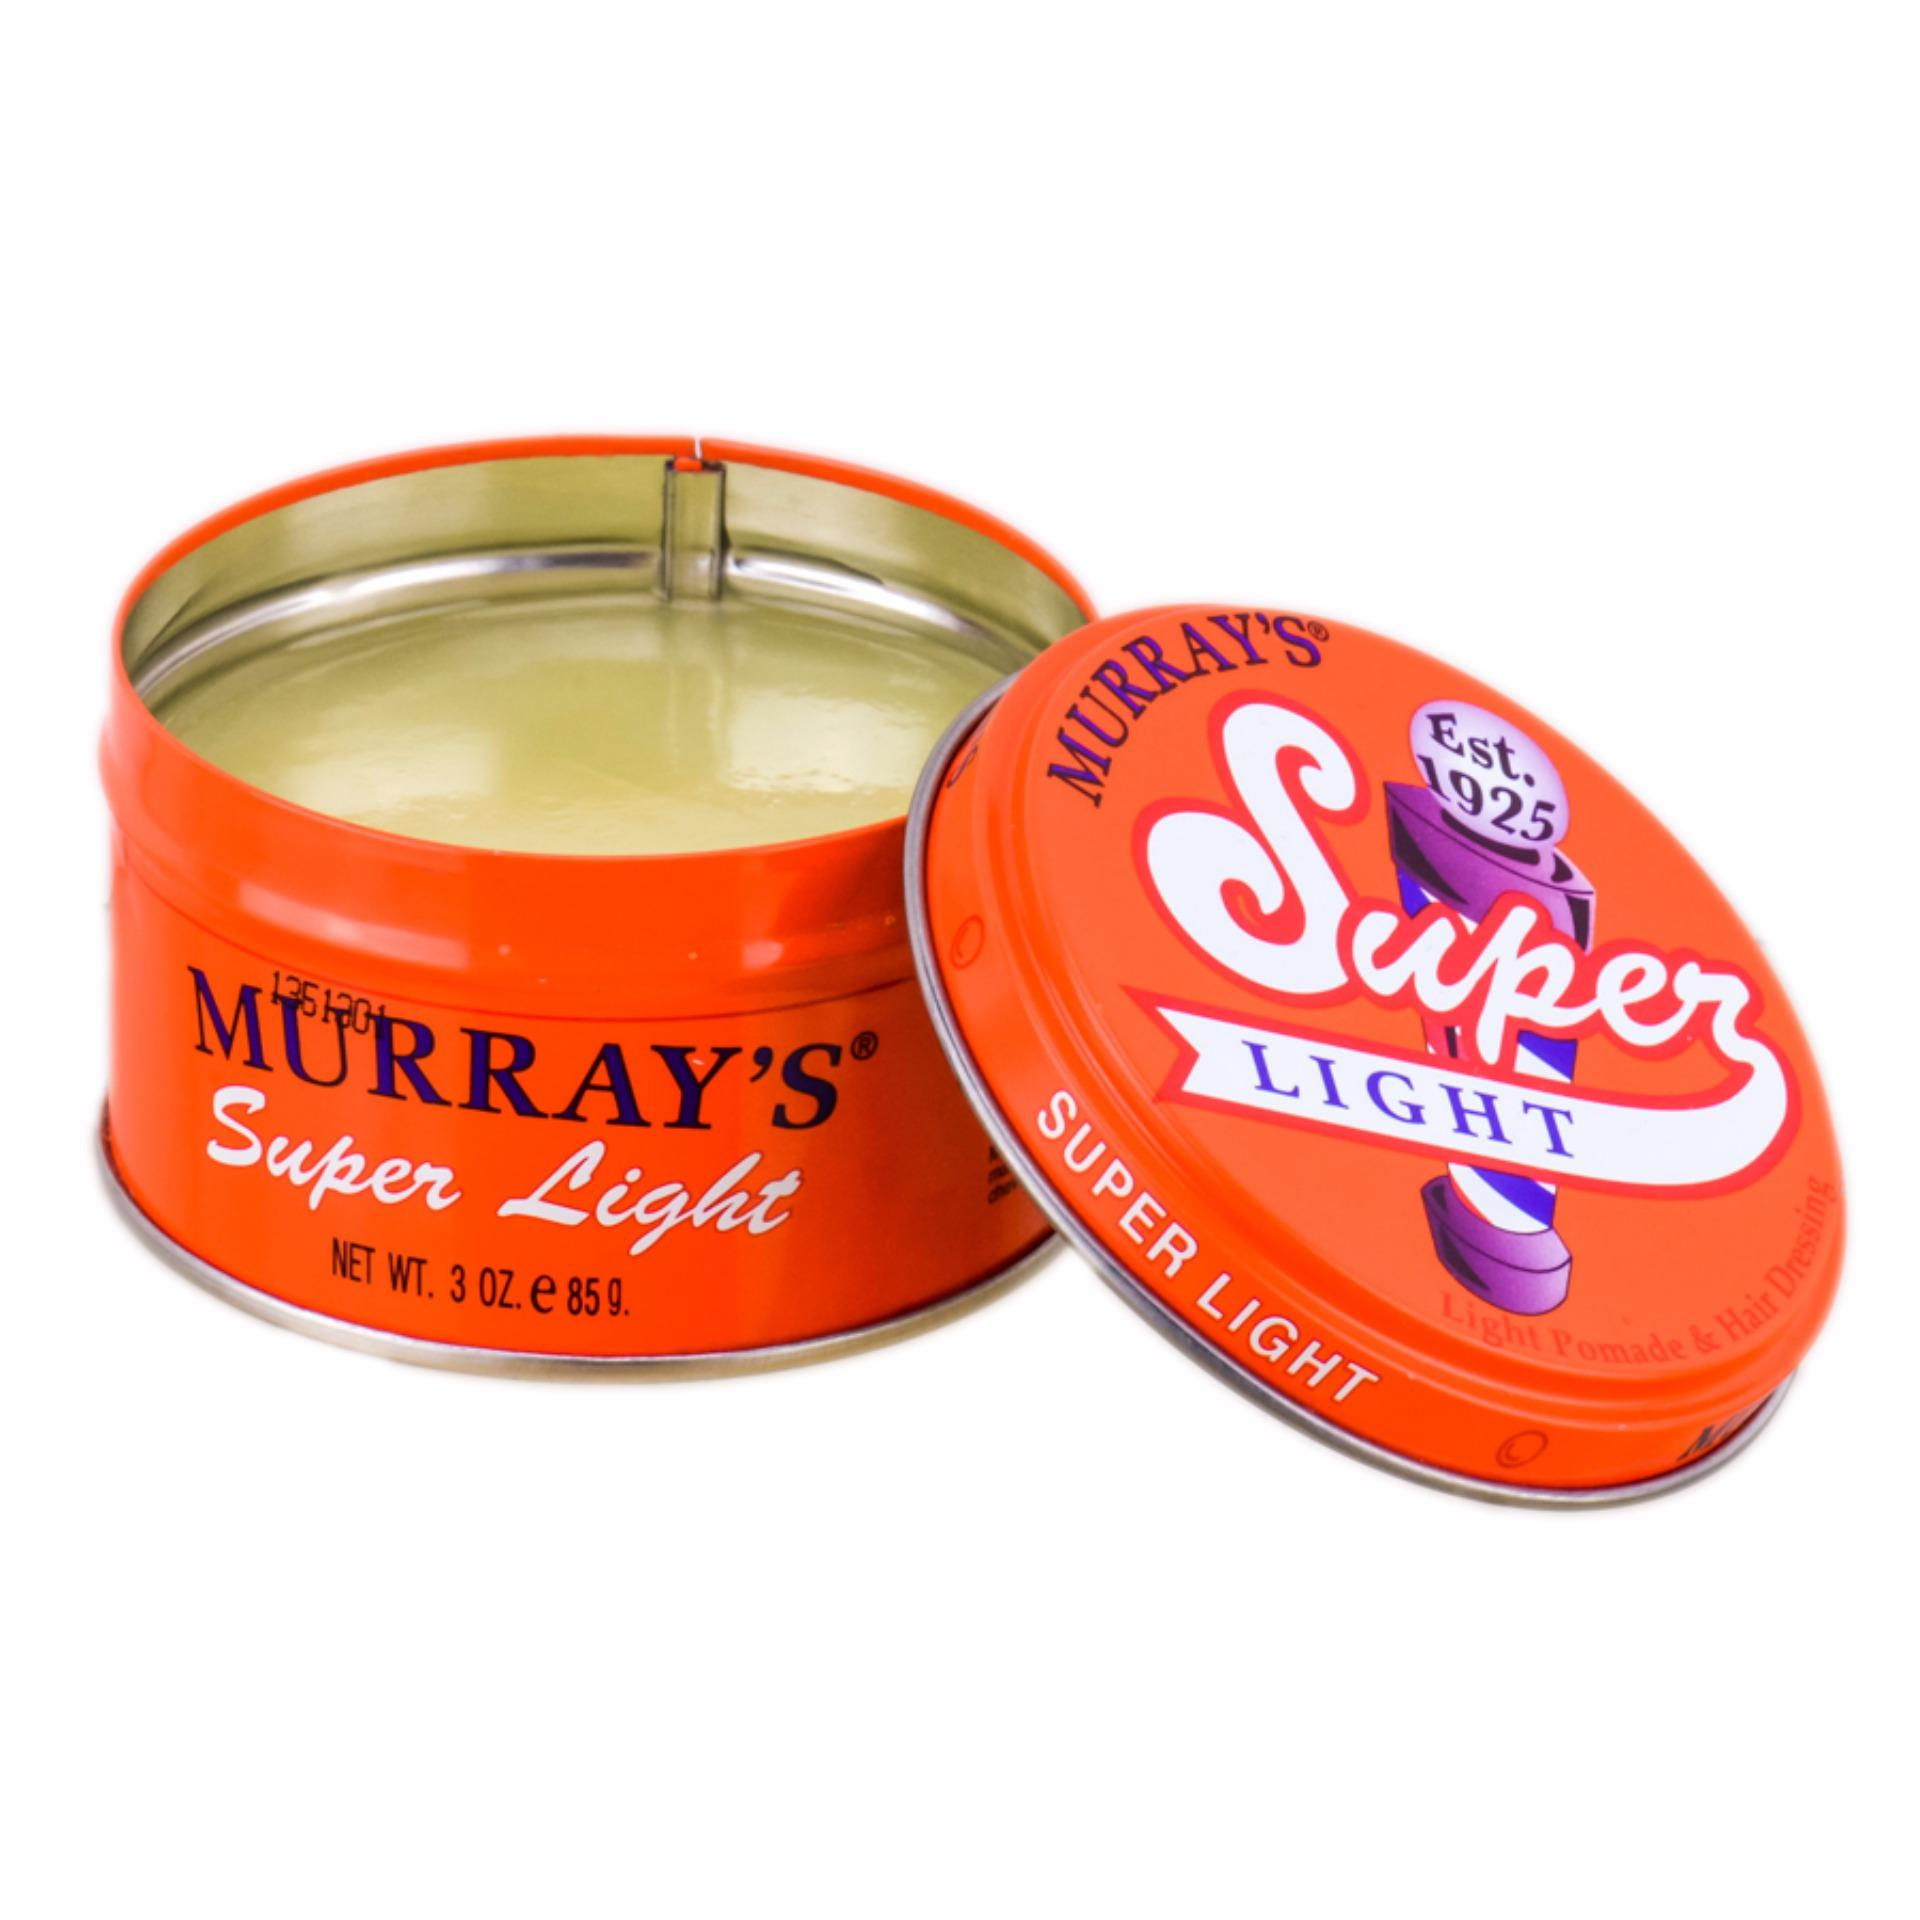 BELI..! Pomade Murray Murrays Superlight Oilbased Terbagus